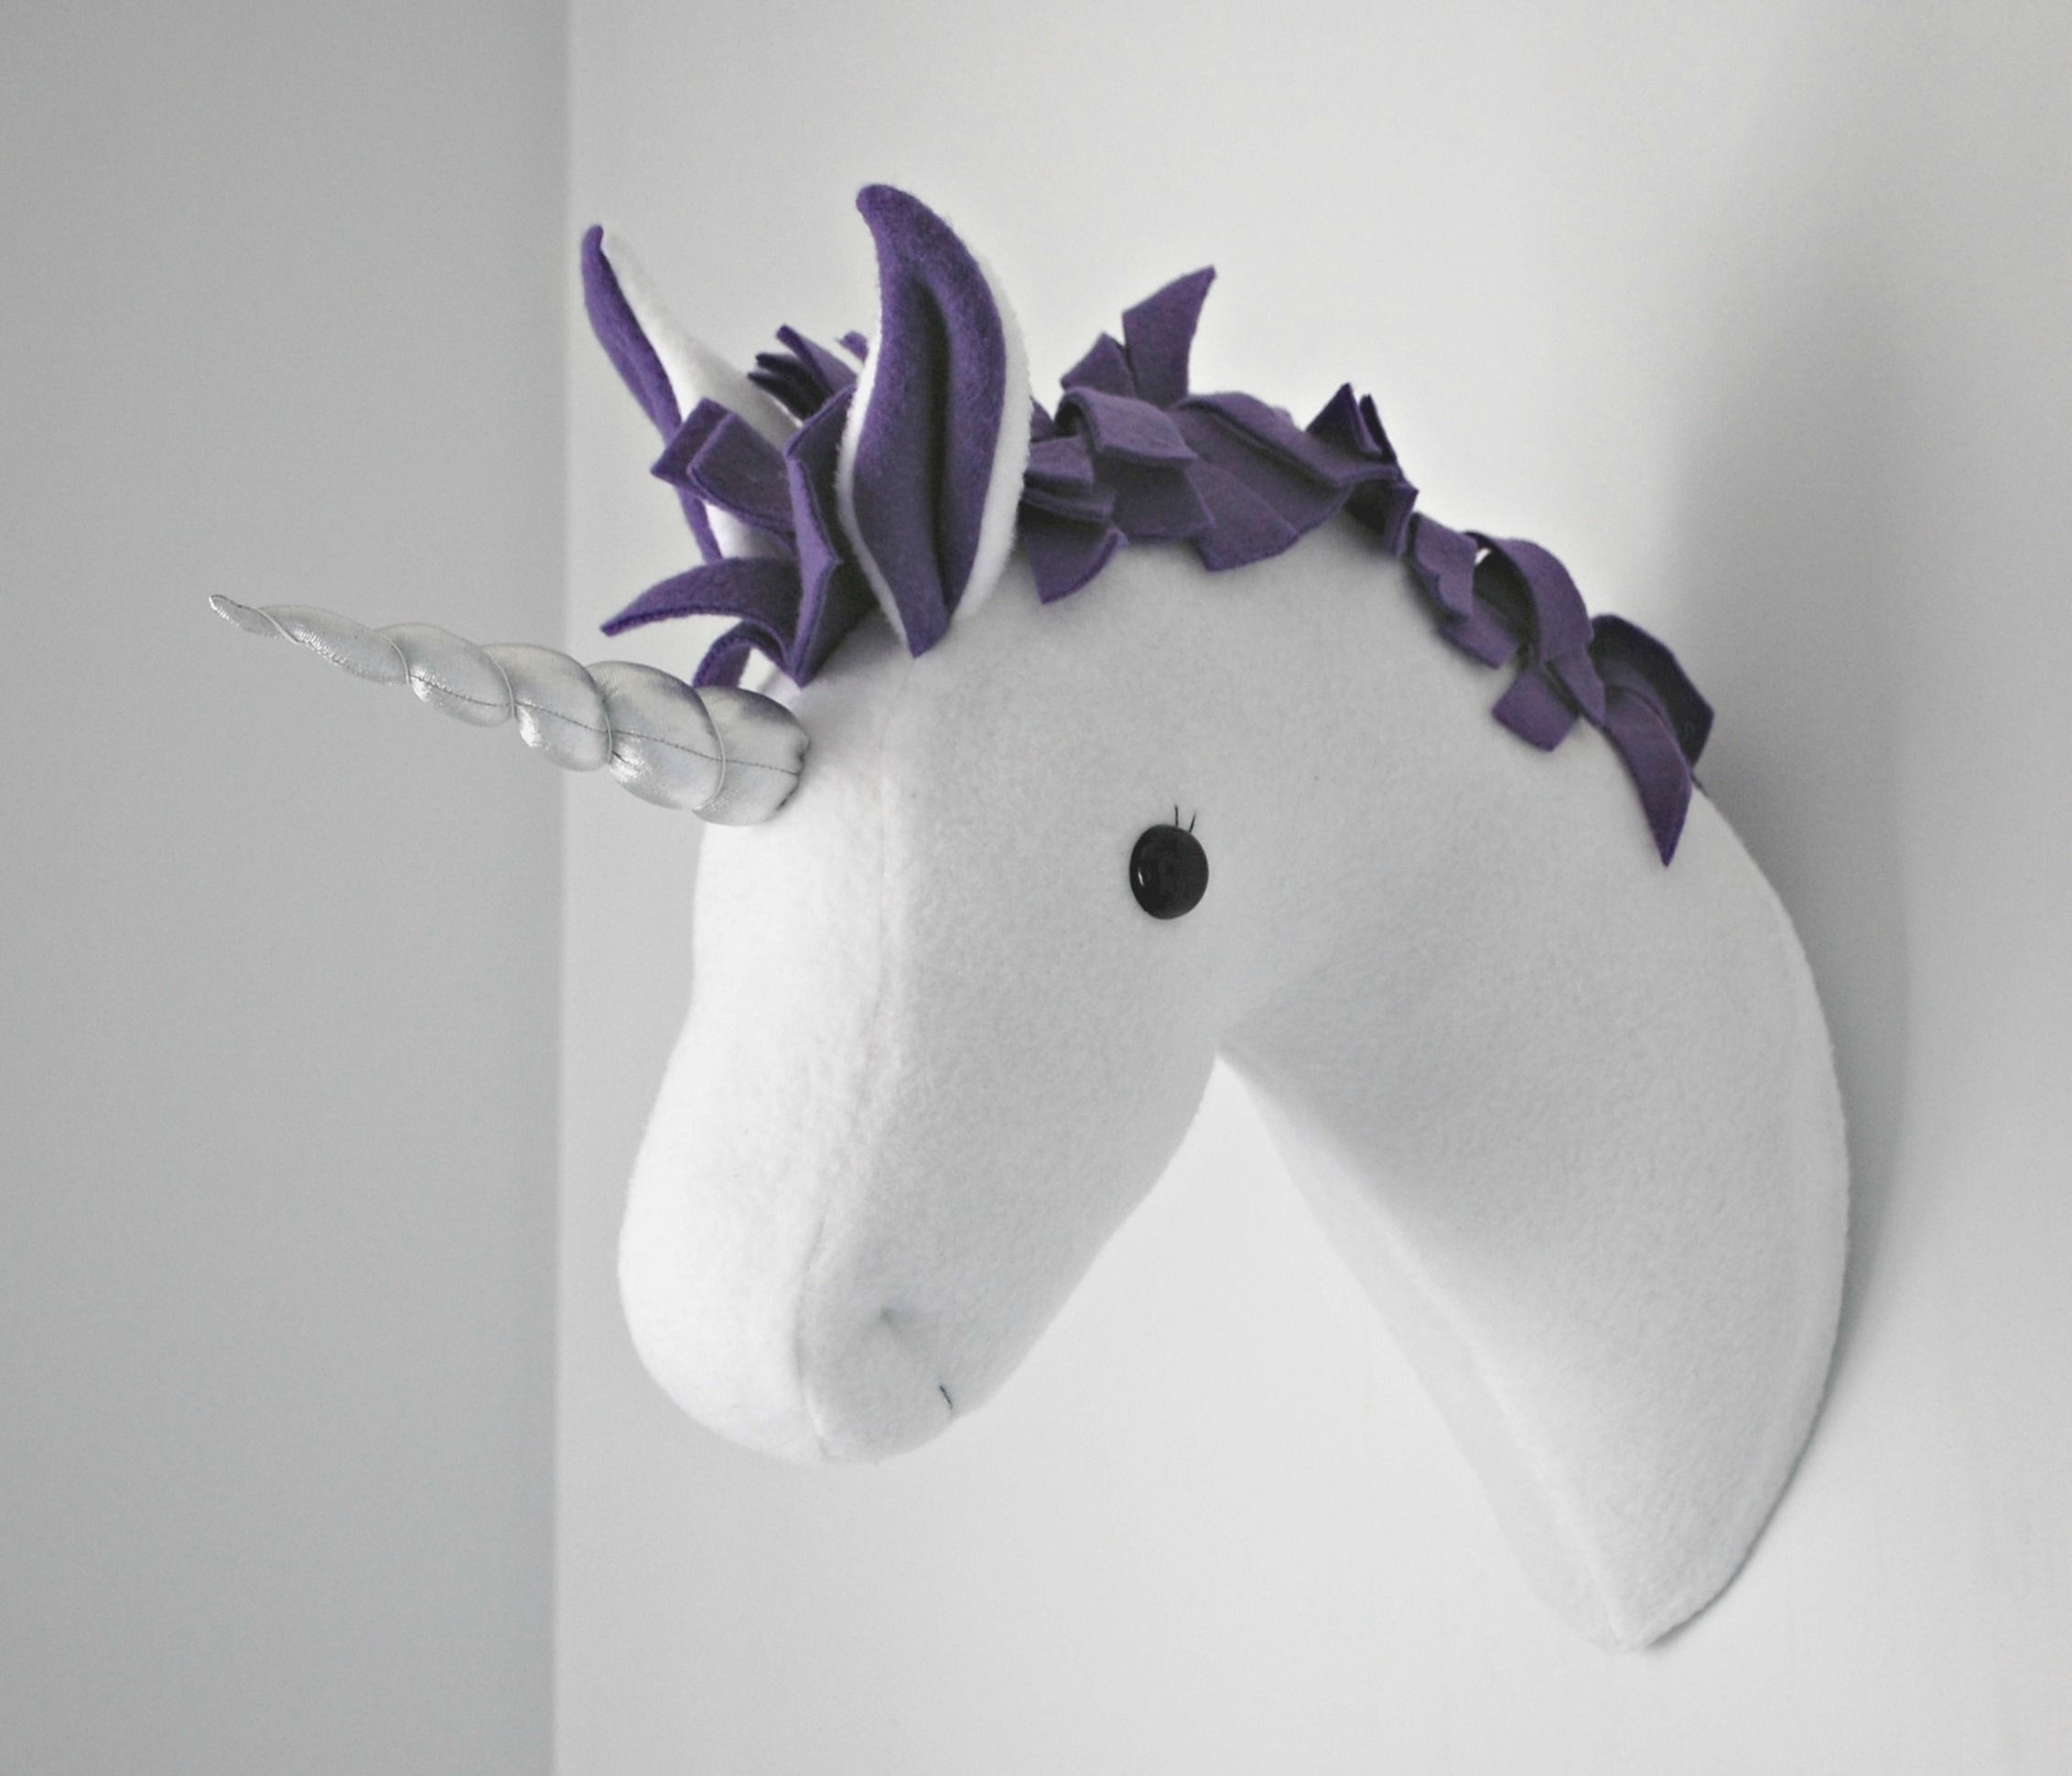 Wall mounted animal heads in fabric heathcliff horse horses coming soon plush taxidermy patterns amipublicfo Gallery